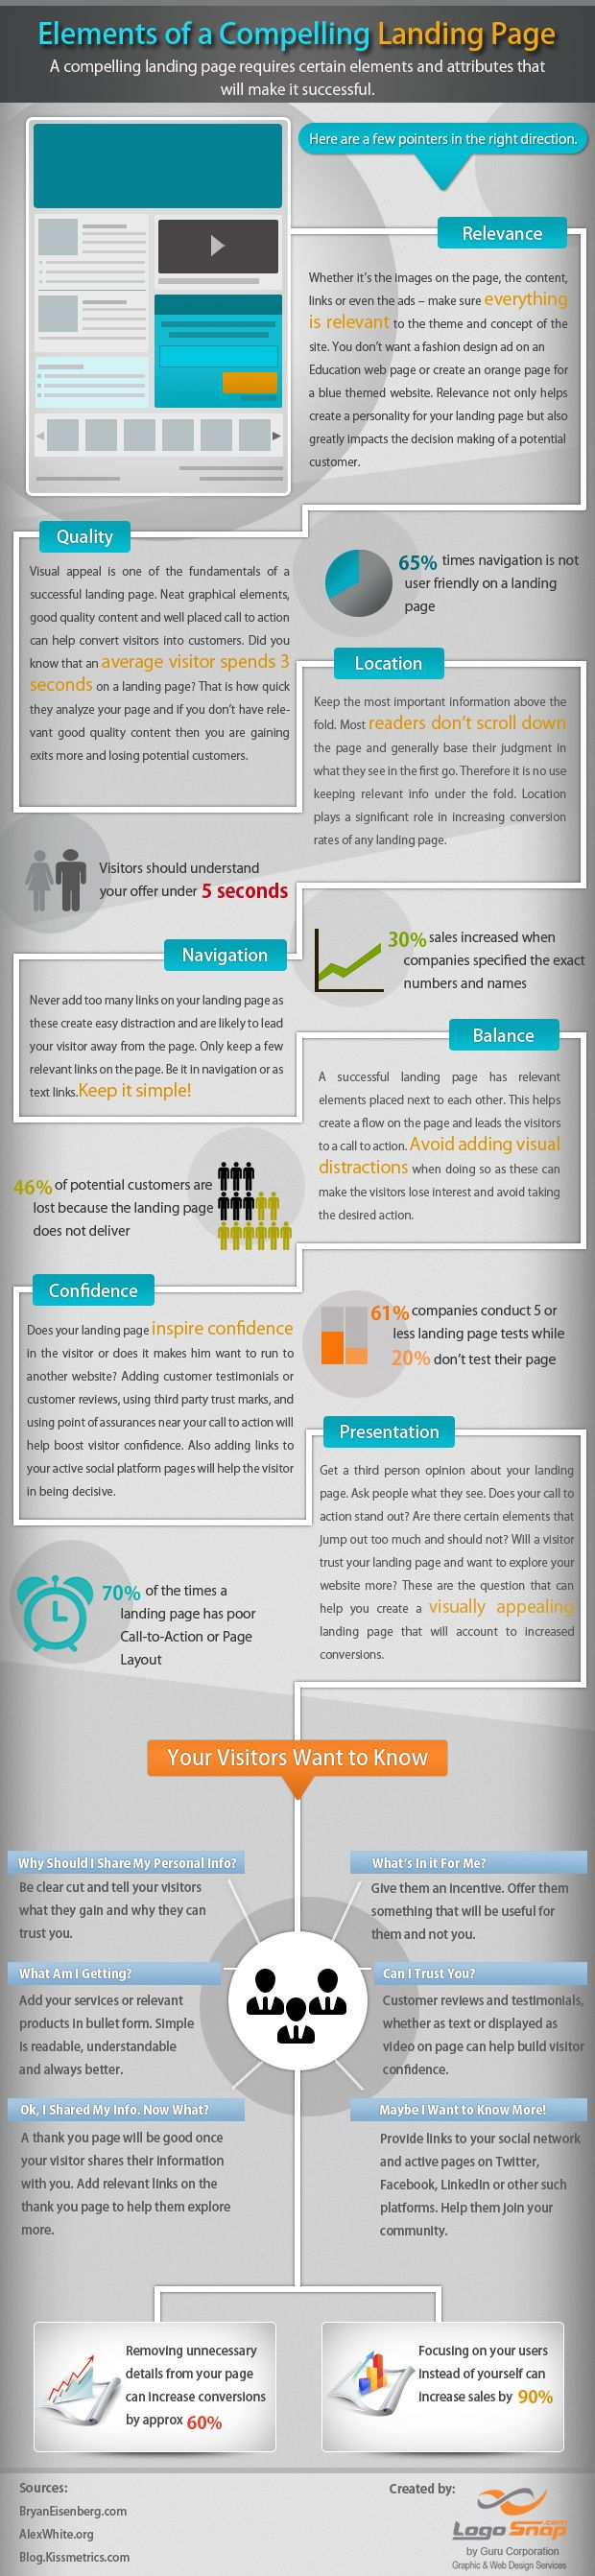 Elements of a Compelling Landing Page